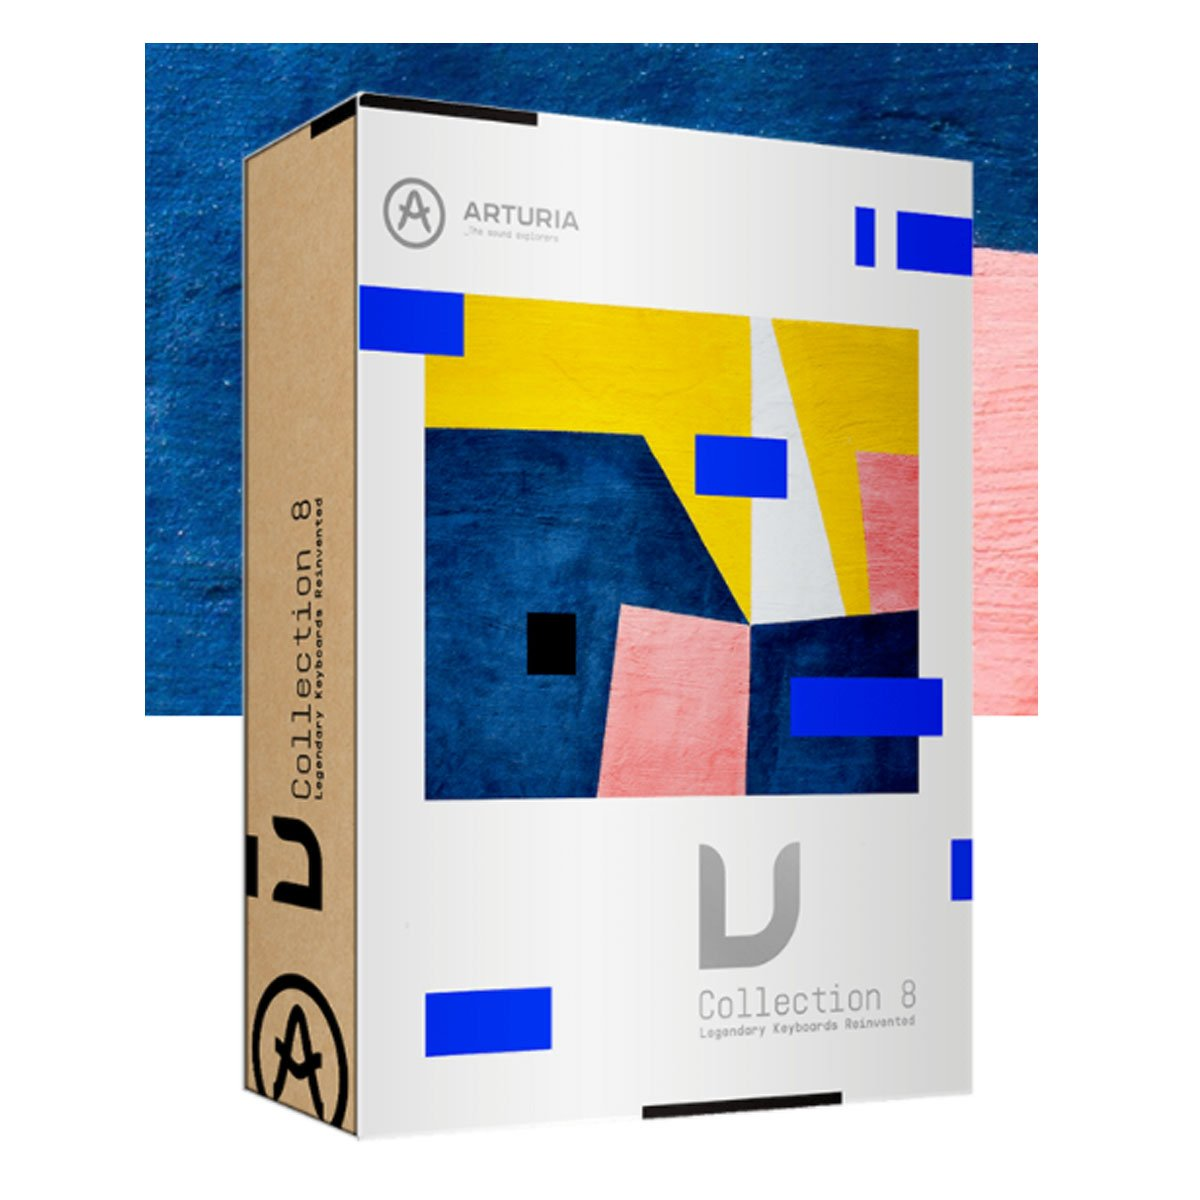 Arturia V Collection 8 Virtual Instrument Bundle Software - Serial Only (NO BOX)